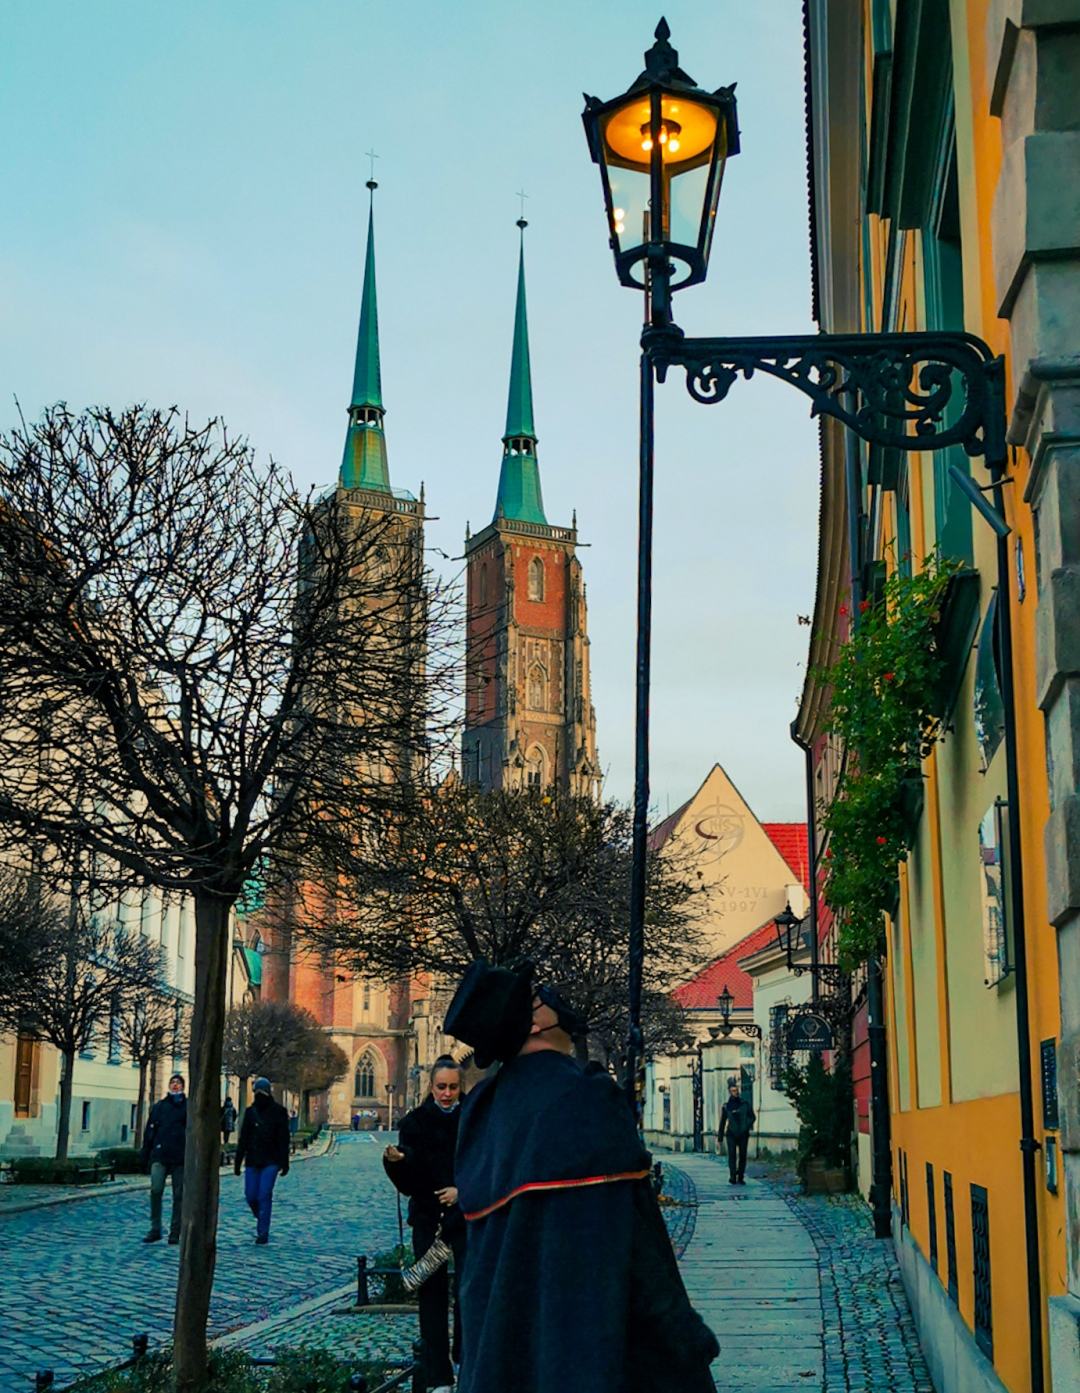 Lamplighter infront of Cathedral in Wroclaw